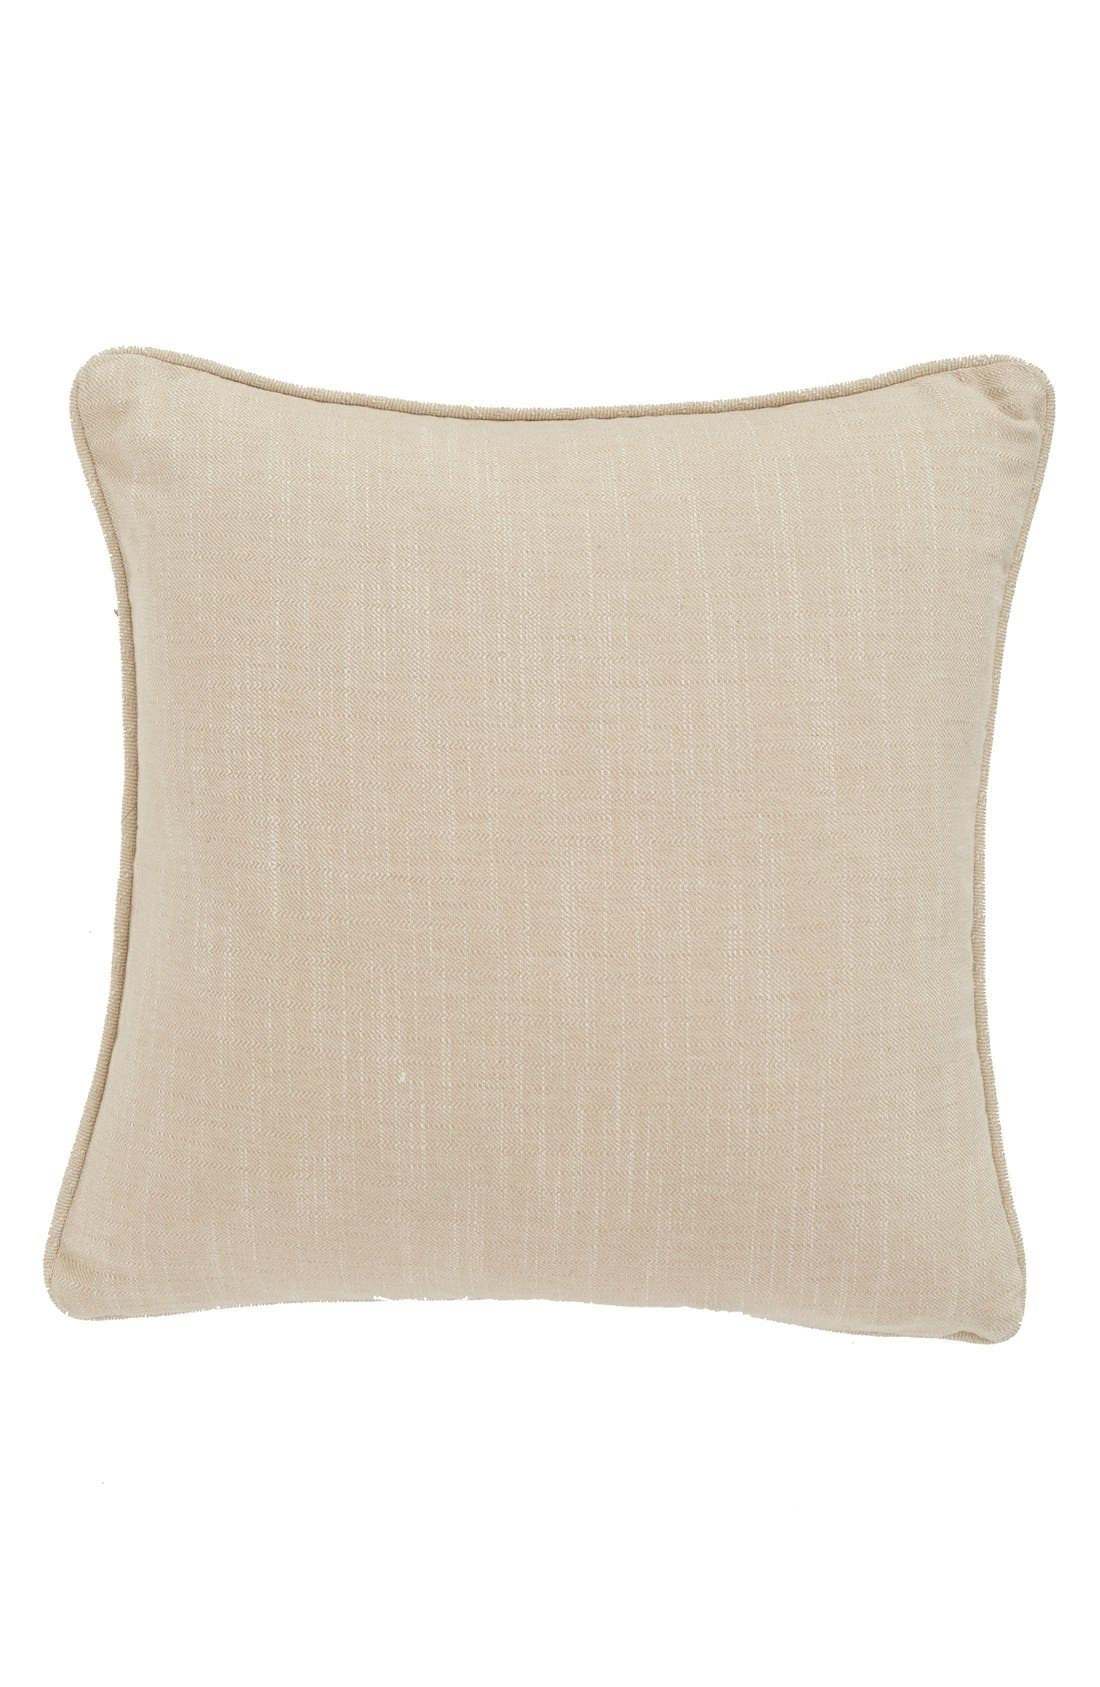 'Lona' Sequin Accent Pillow,                             Alternate thumbnail 2, color,                             Pink/ White/ Silver